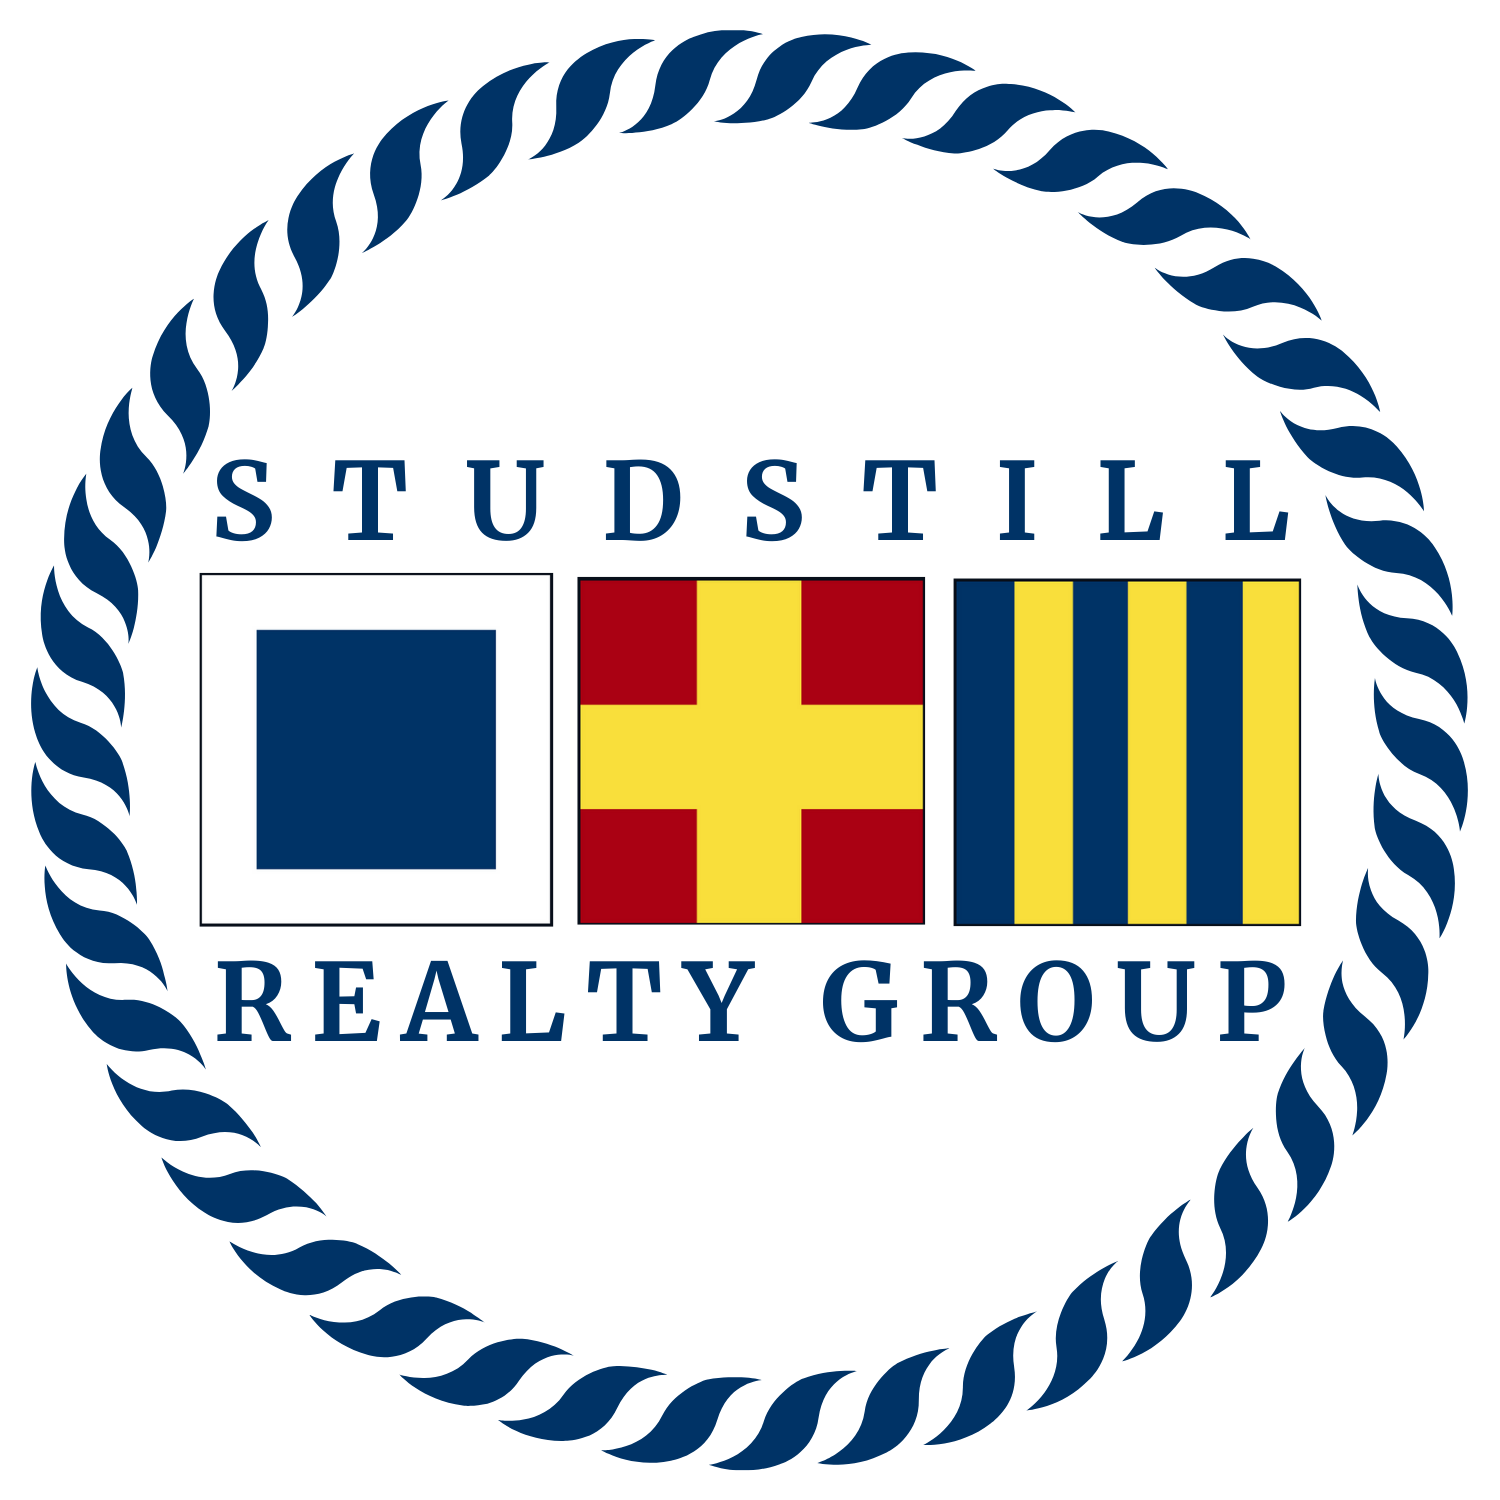 Studstill Realty Group